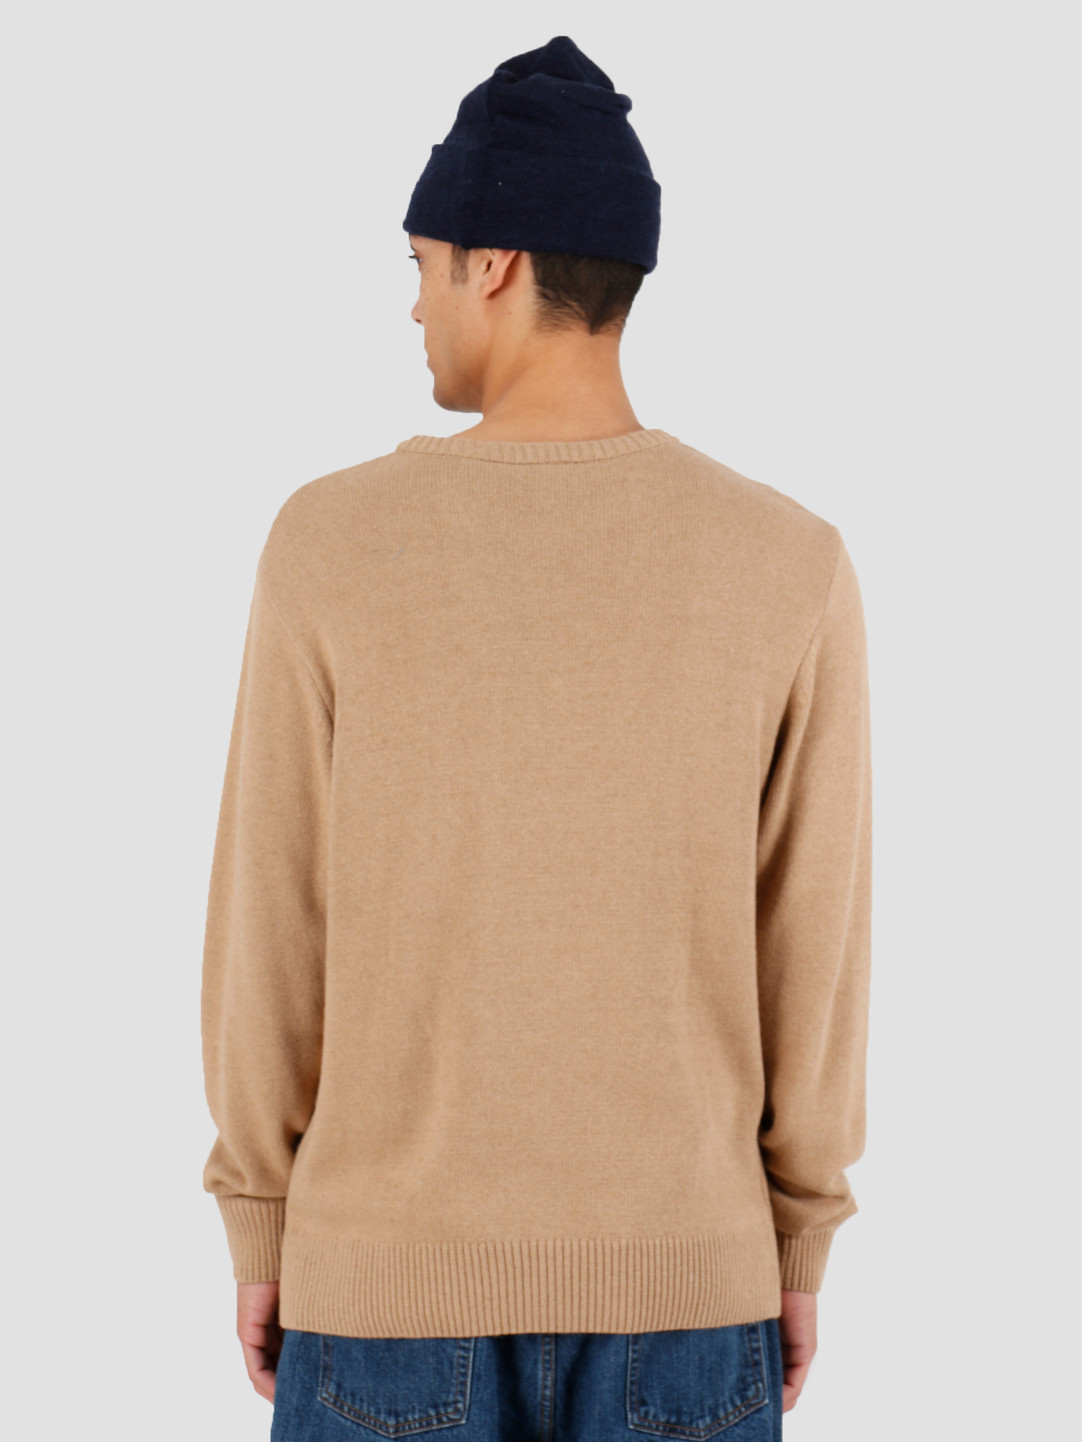 By Parra By Parra Clues Knitted Pullover Camel 43120